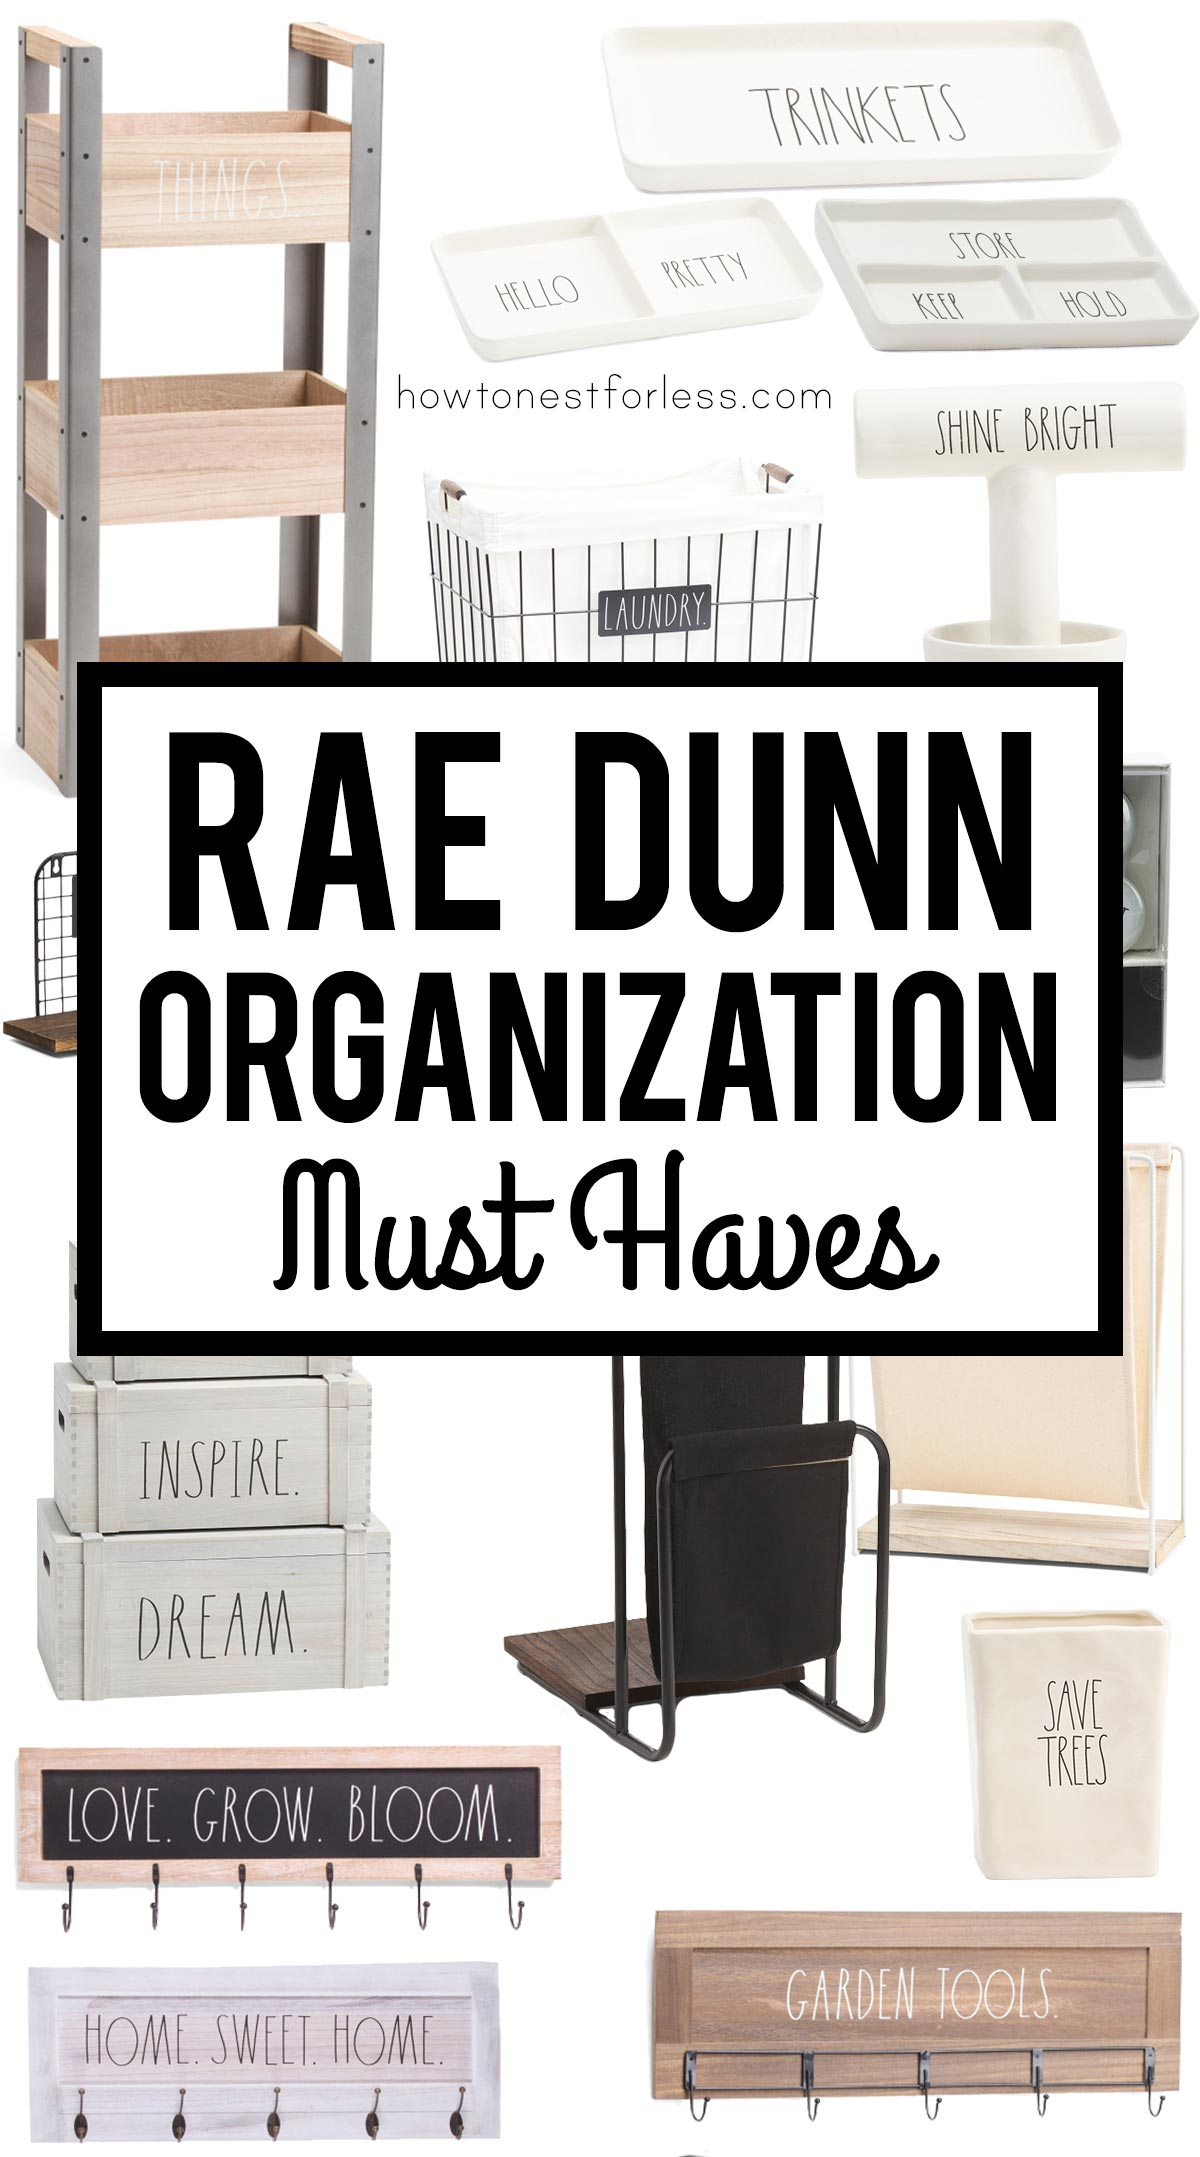 Rae Dunn Organization Must Haves